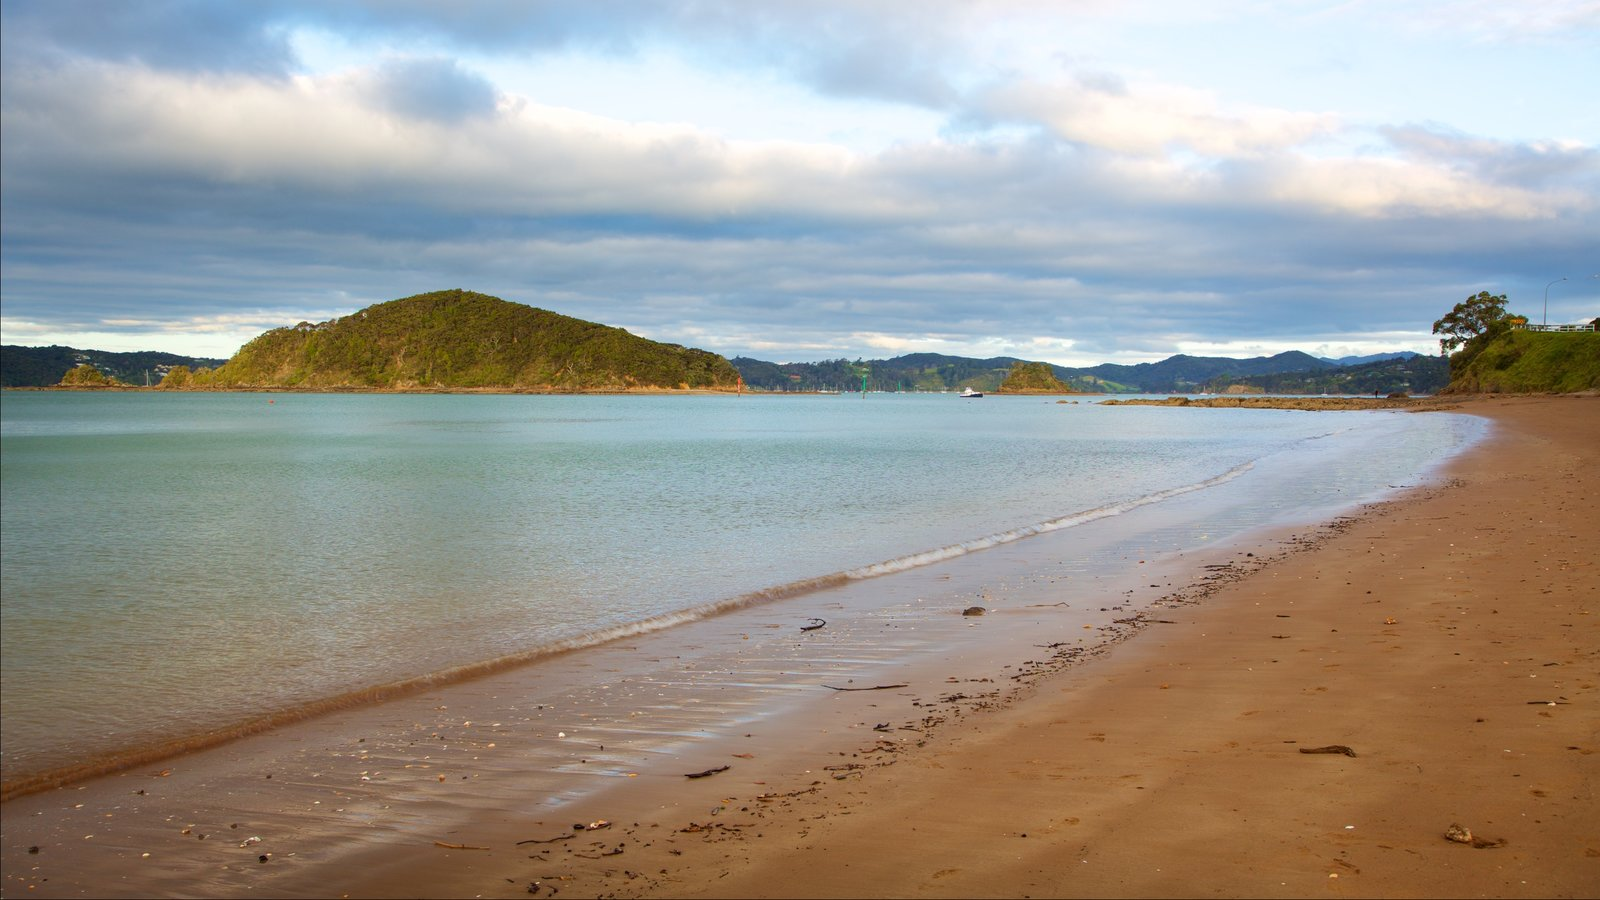 Paihia Beach featuring a bay or harbor and a sandy beach